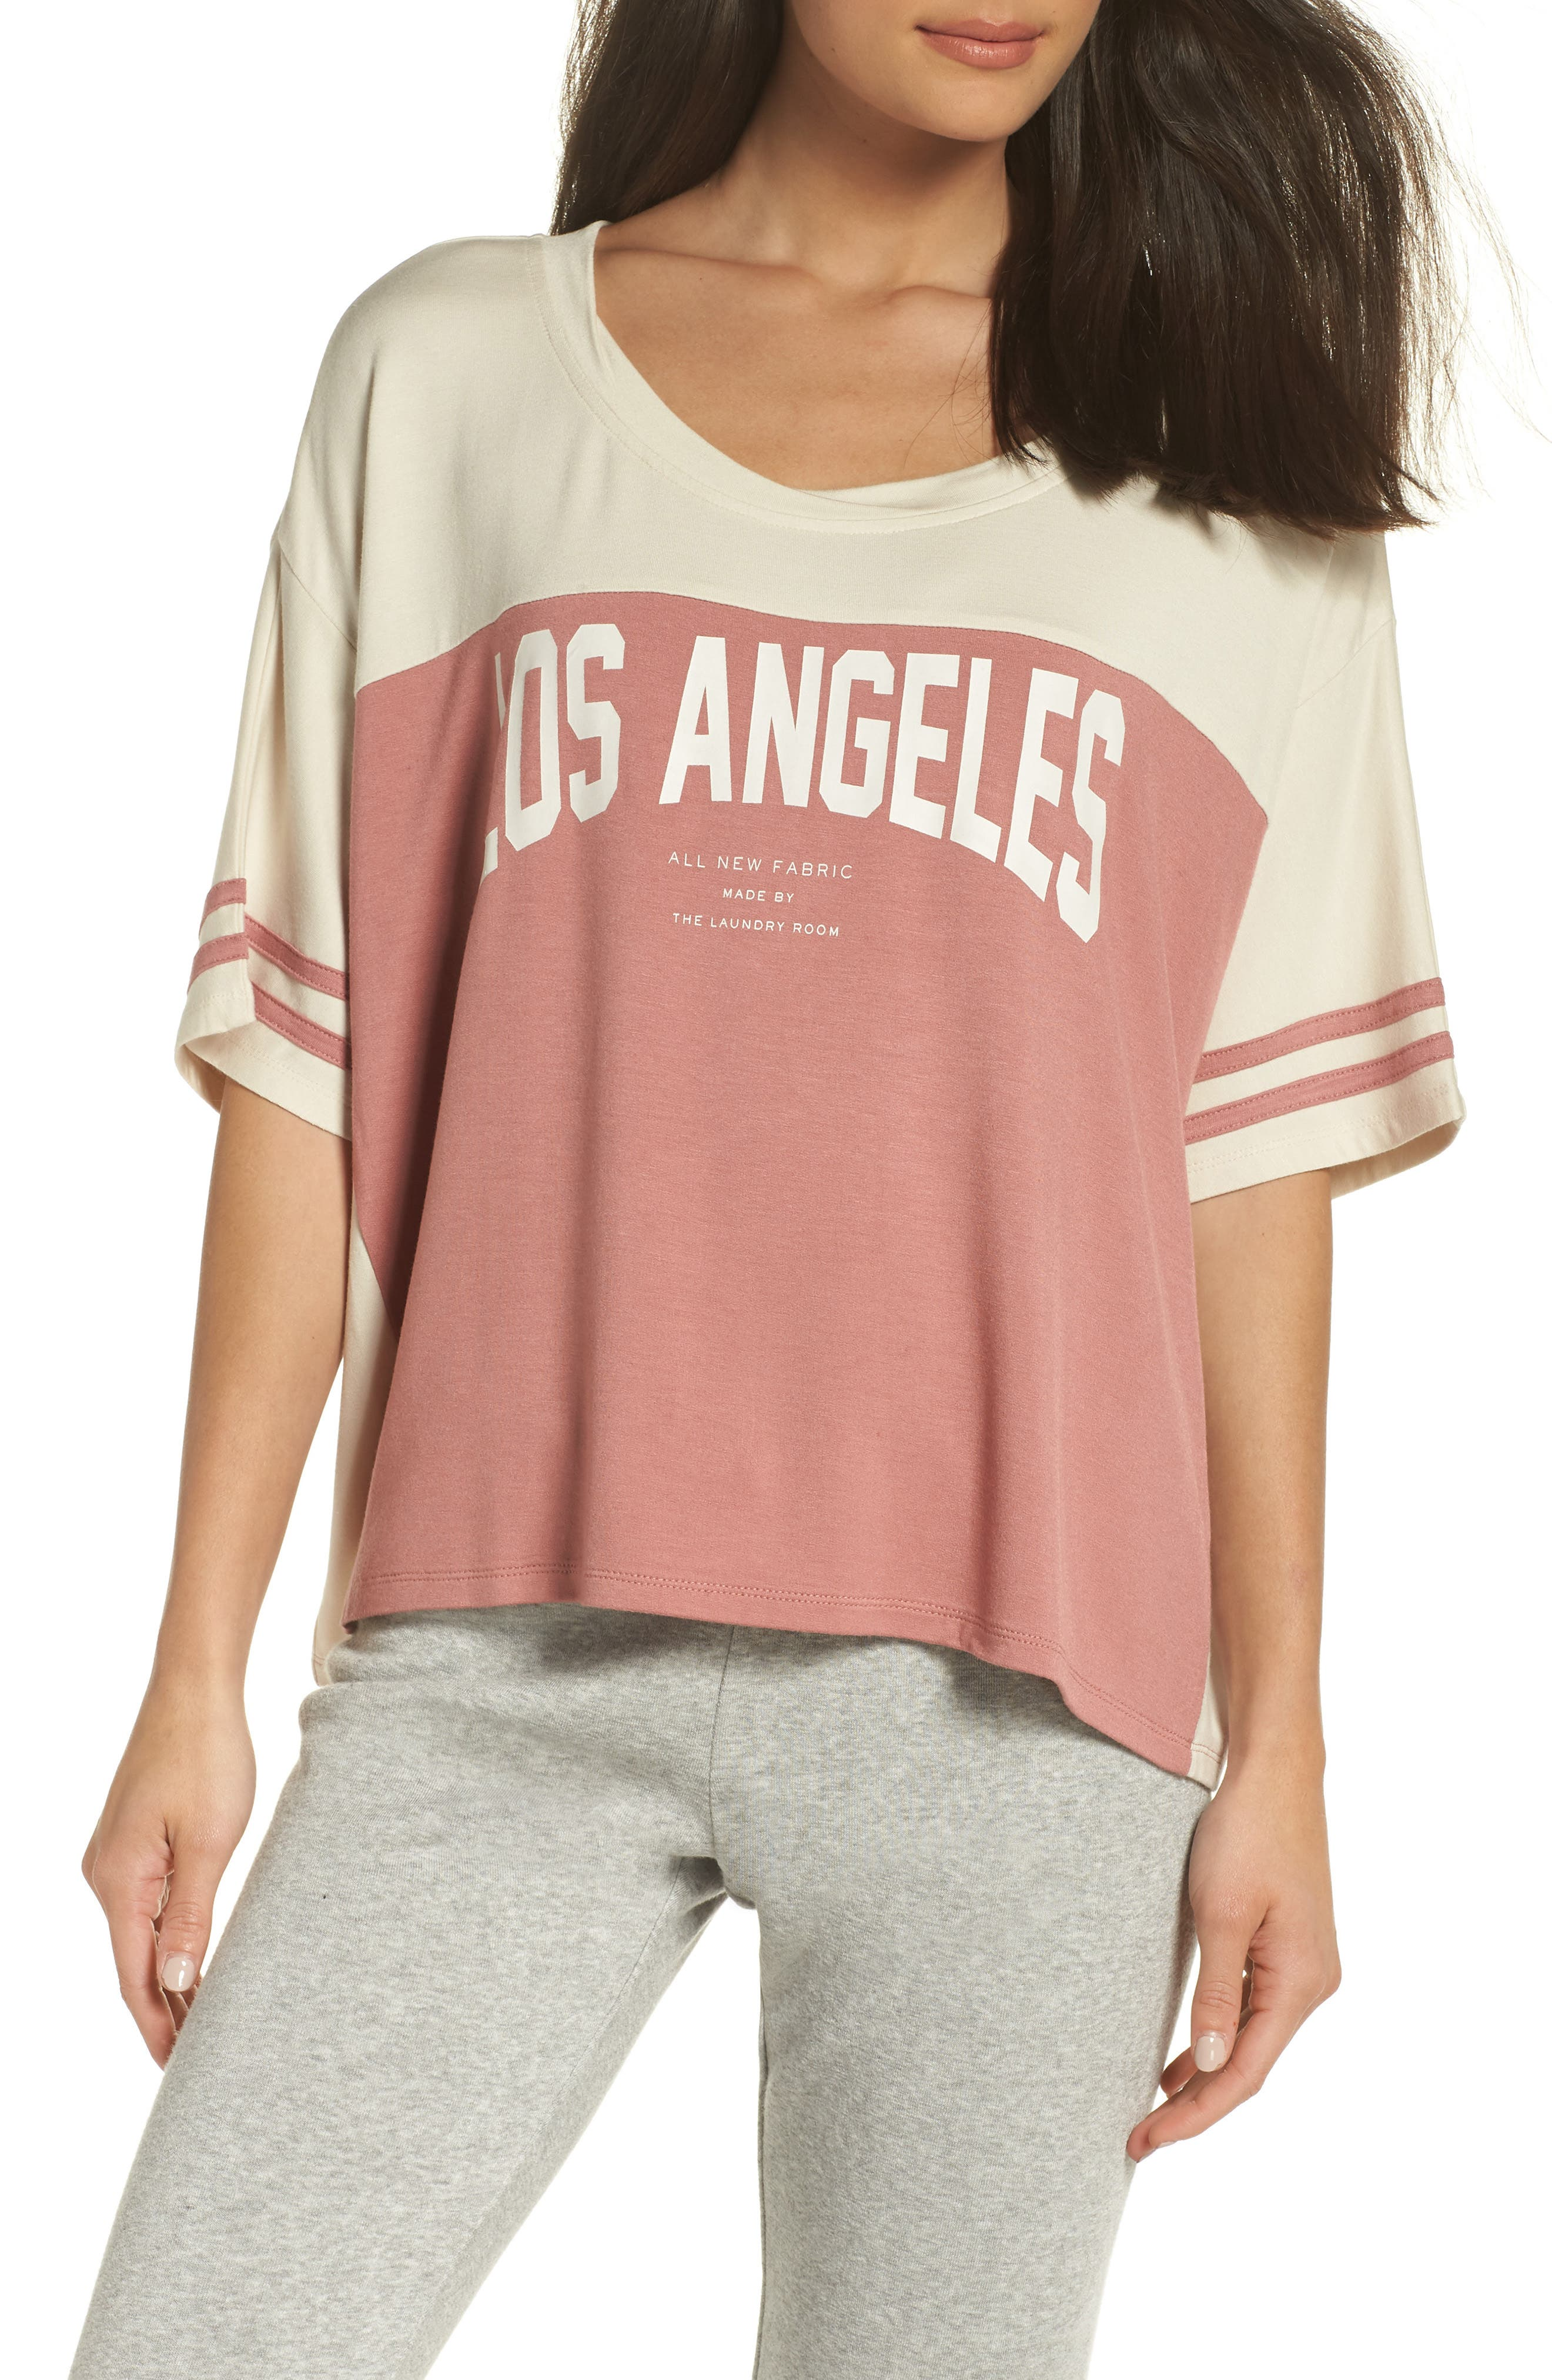 Los Angeles Crop Tee,                             Main thumbnail 1, color,                             930